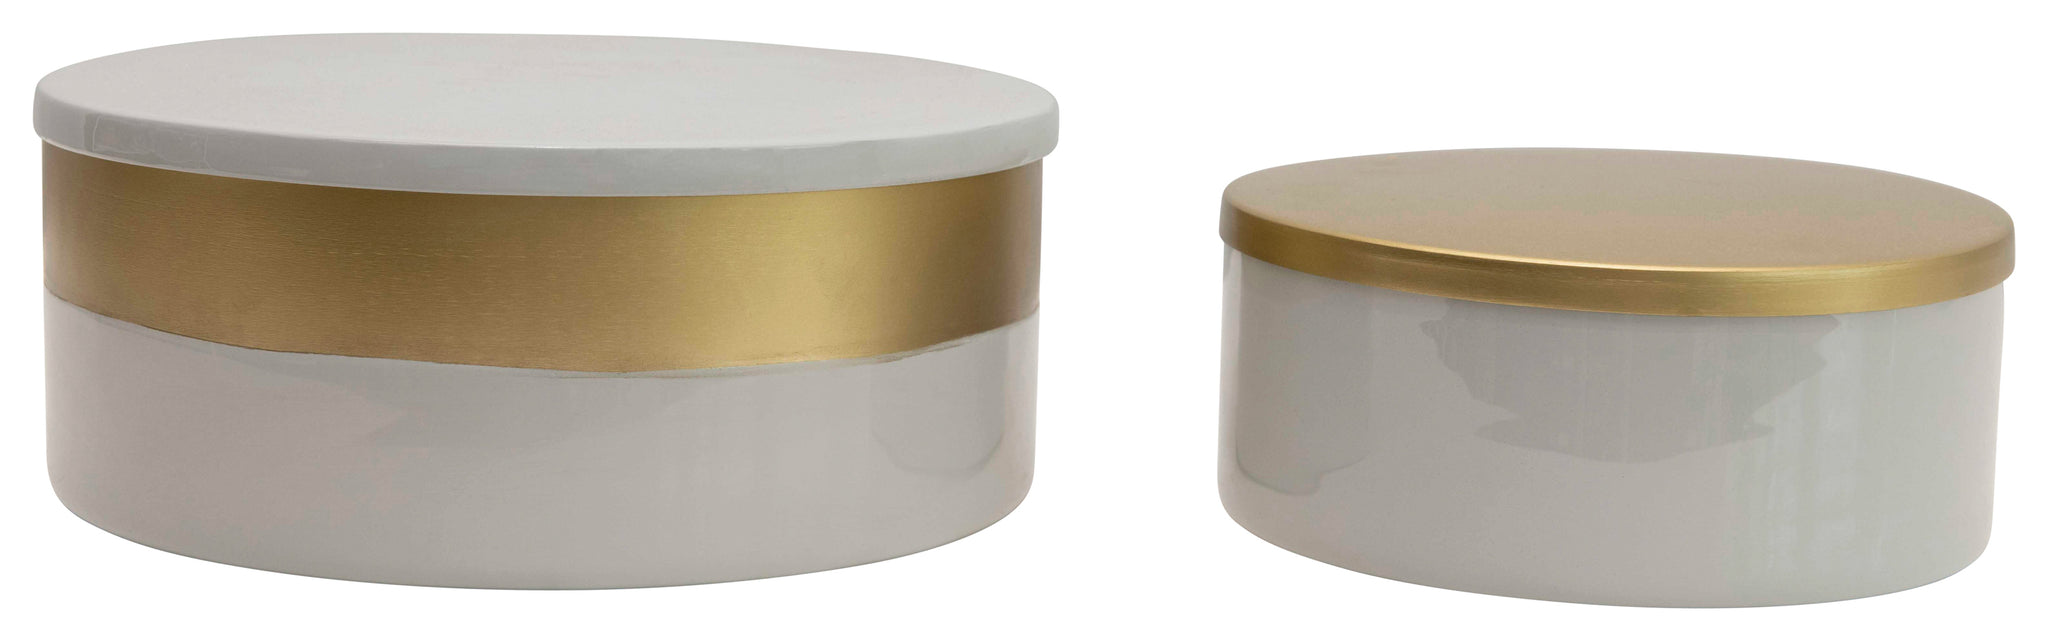 "7.5"" & 10"" Round Stainless Steel Kitchen Containers with Lids (Set of 2 Sizes)"